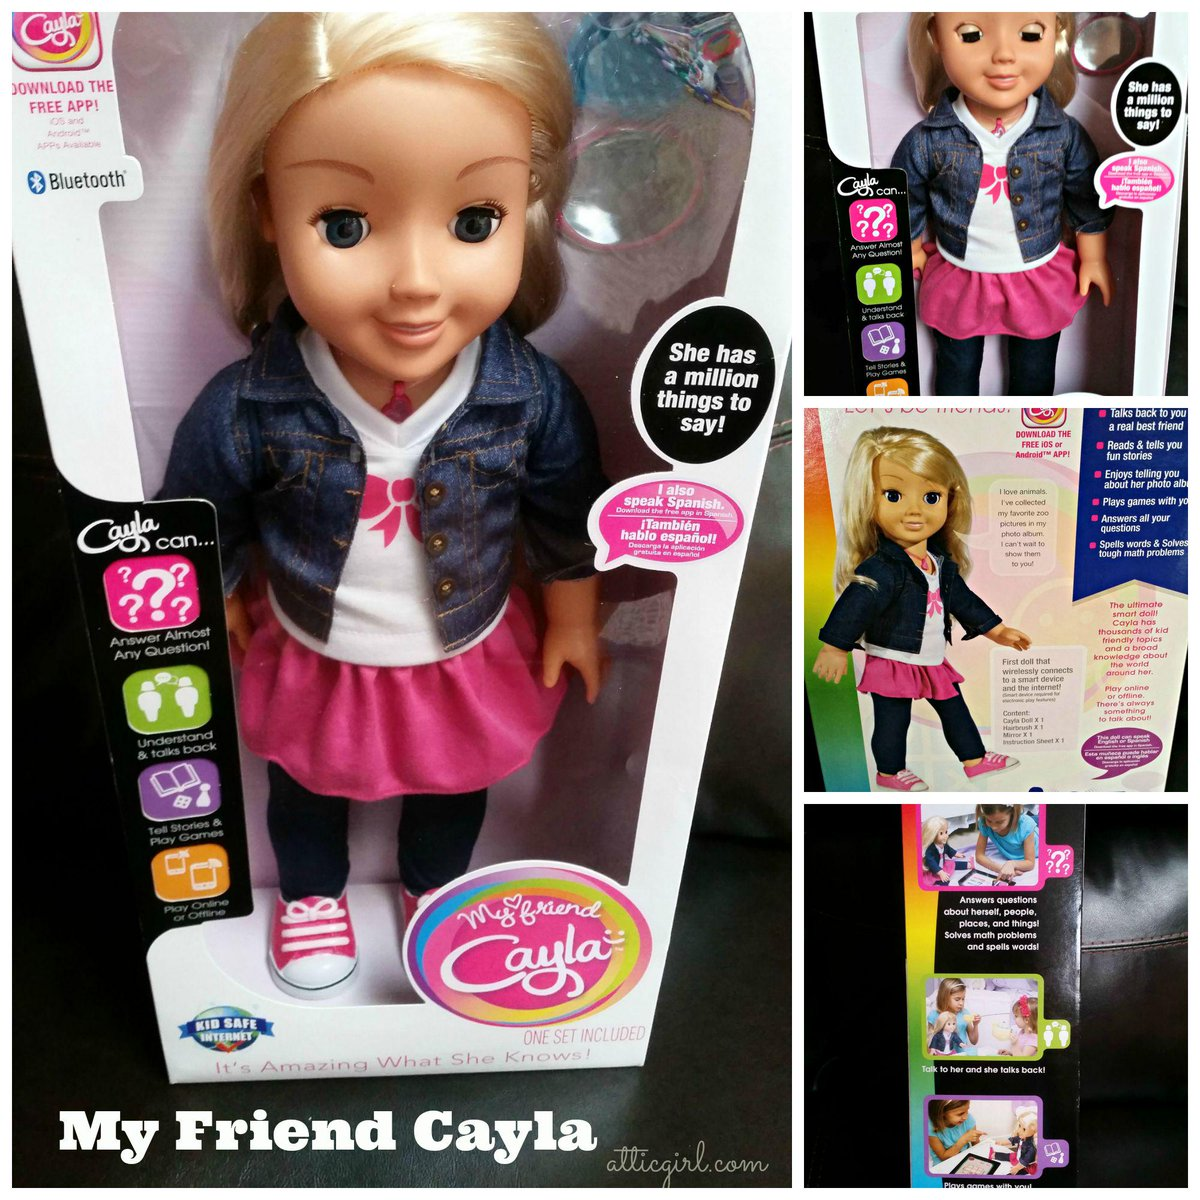 My Friend Cayla {Holiday Gift Guide} #sponsored #holidaygiftguide #dolls http://t.co/unc4siDqCq … @myfriendcayla http://t.co/oRh5cNMdUm